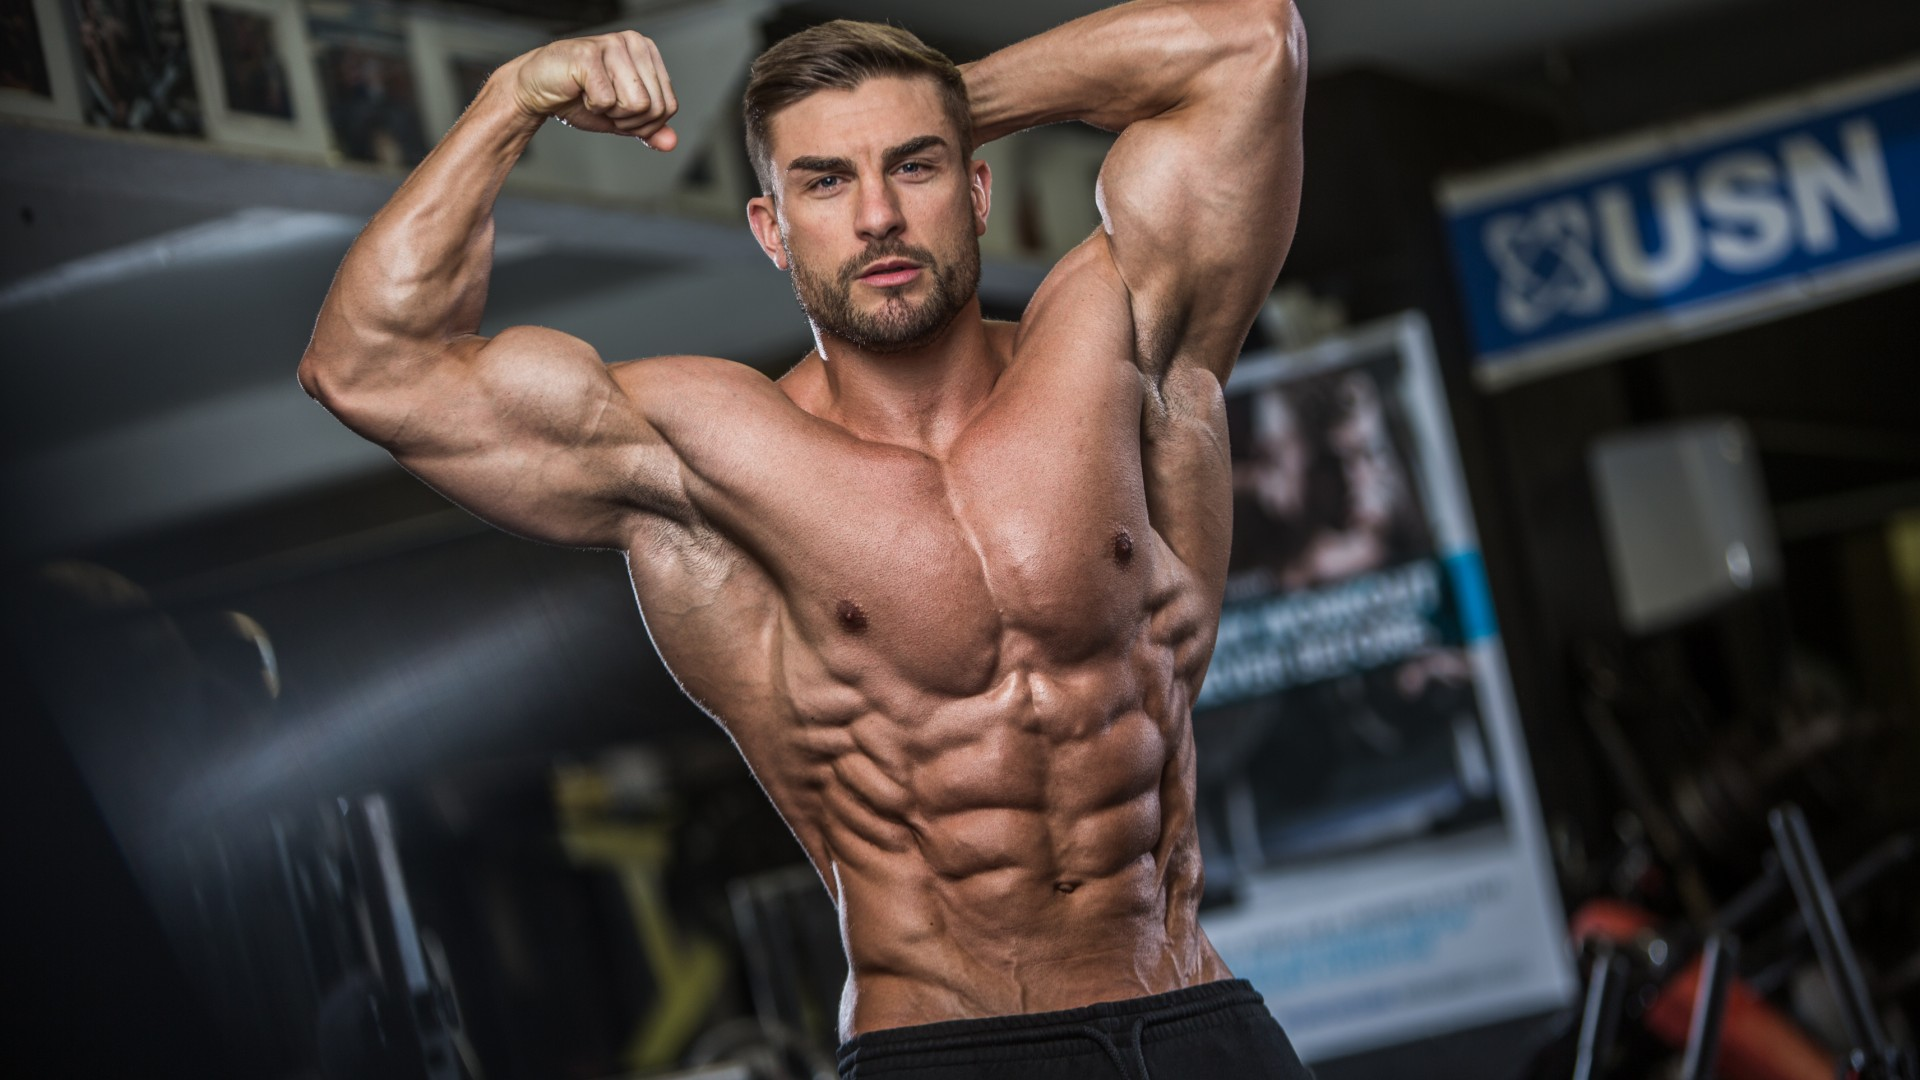 Pumping Iron: Ryan Terry on life as a professional